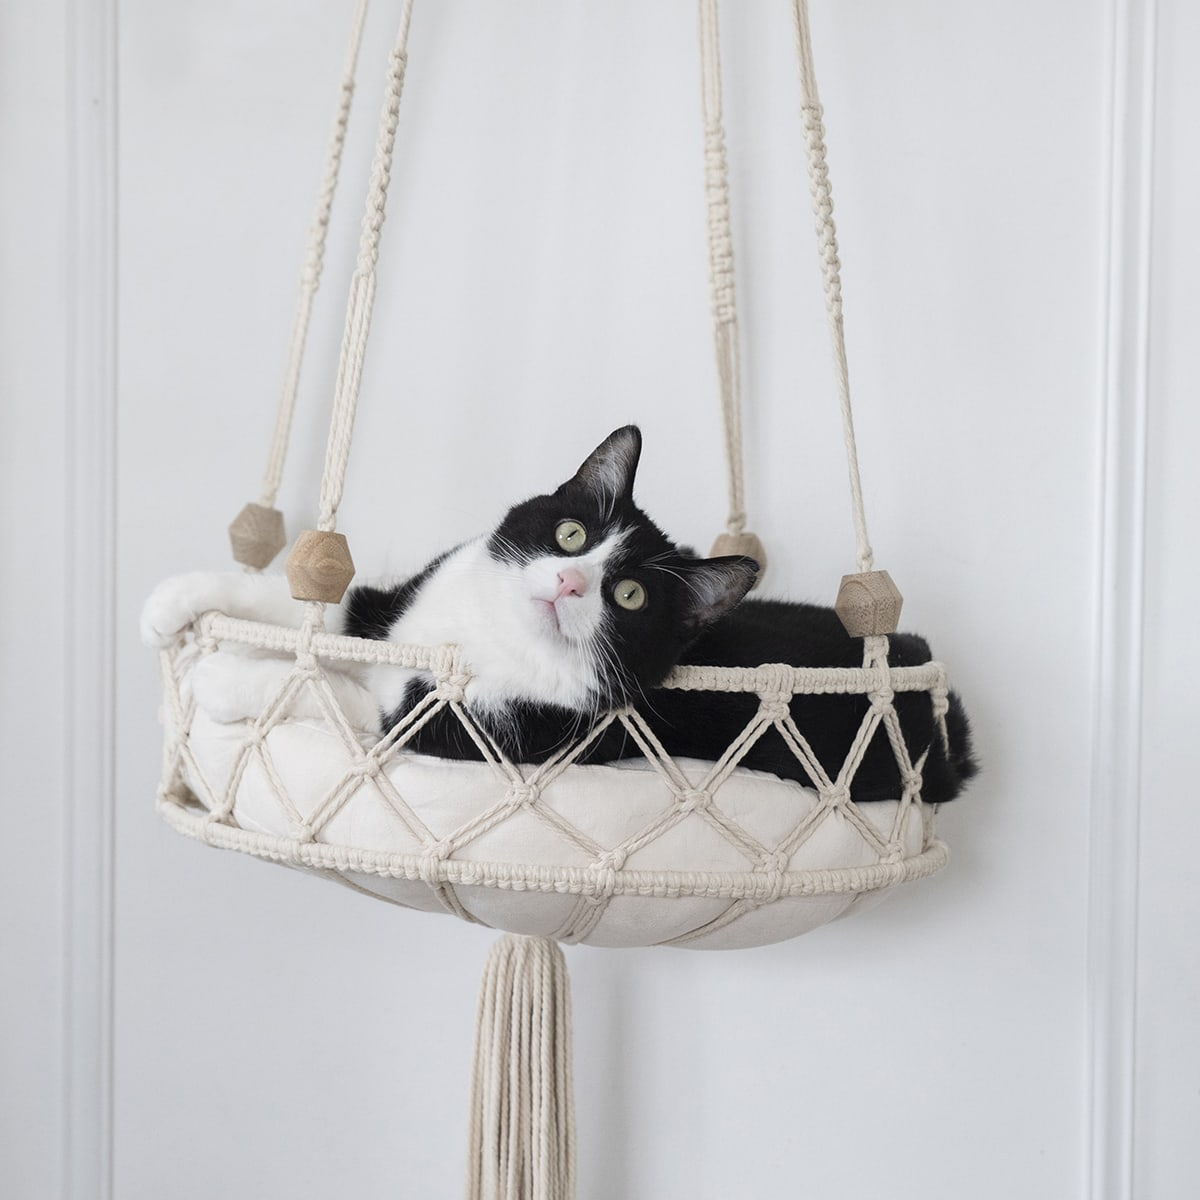 purrfectly cute DIY cat bed using macrame cord